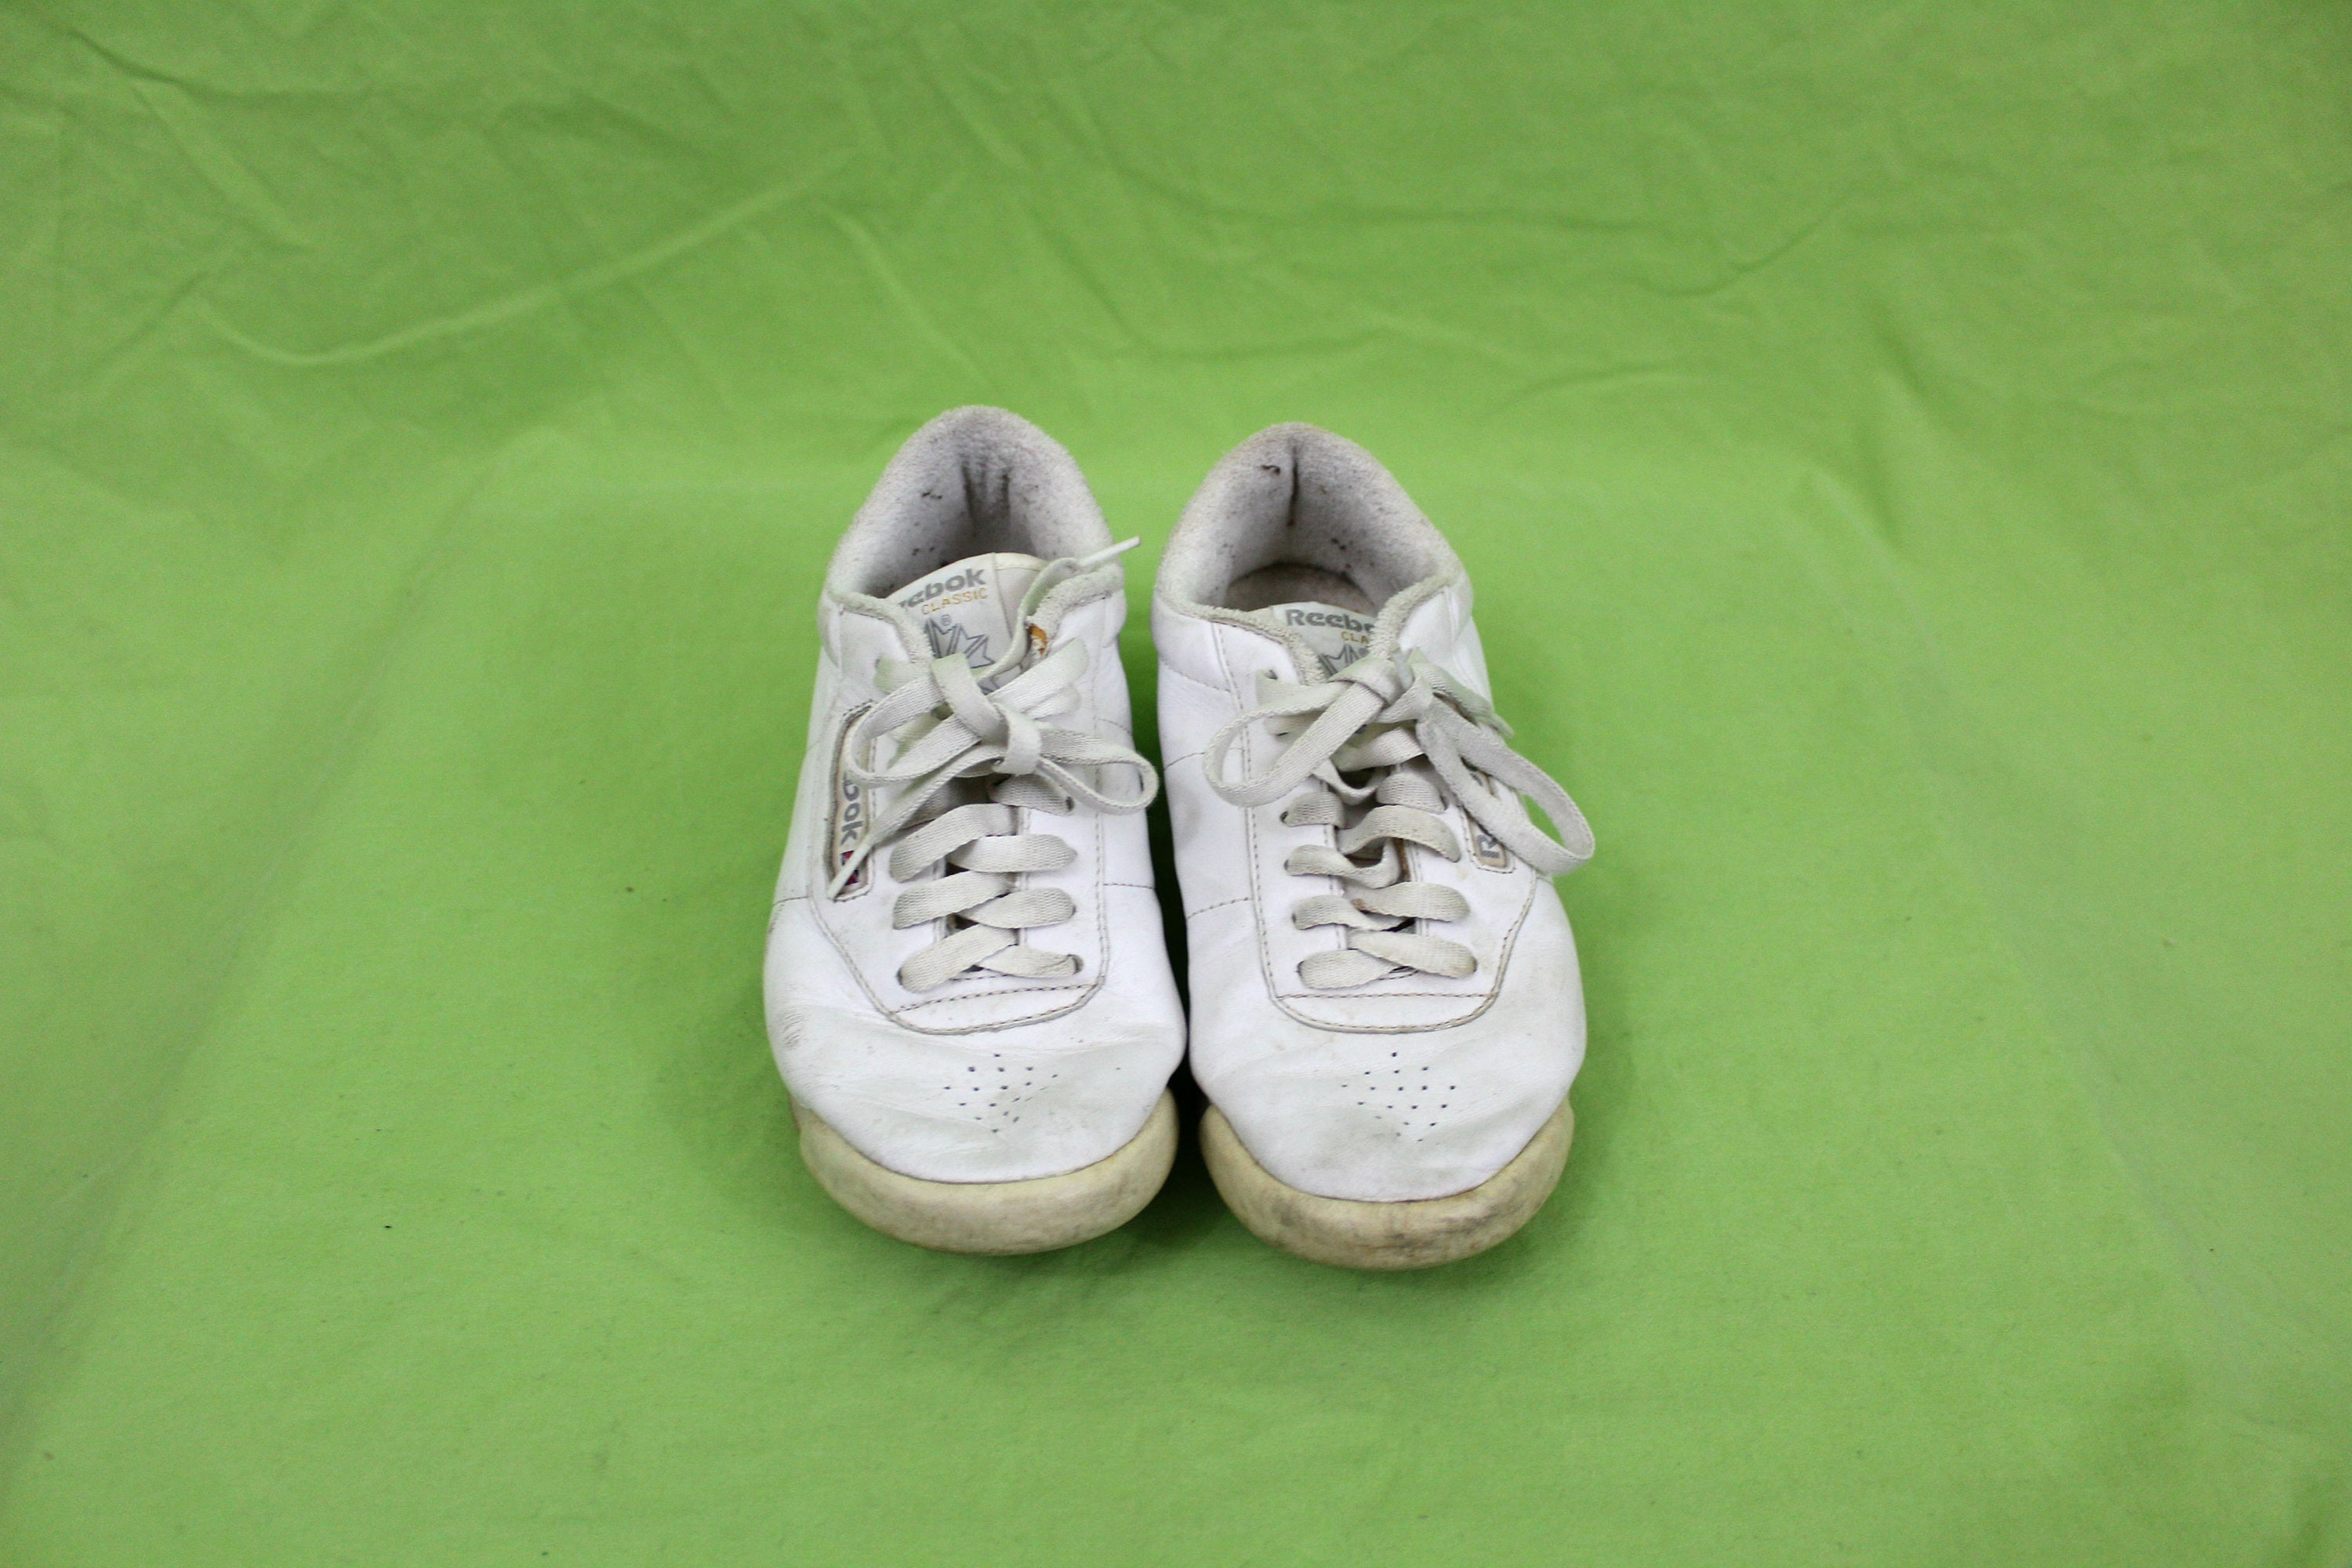 cfbdd10c85d Vintage White Reebok Sneakers. Rare Retro 90s White Size 7 White Reebok  Classic Shoes. Low Top Reebok Sneakers. 90s Hip Hop Womens Sneaker